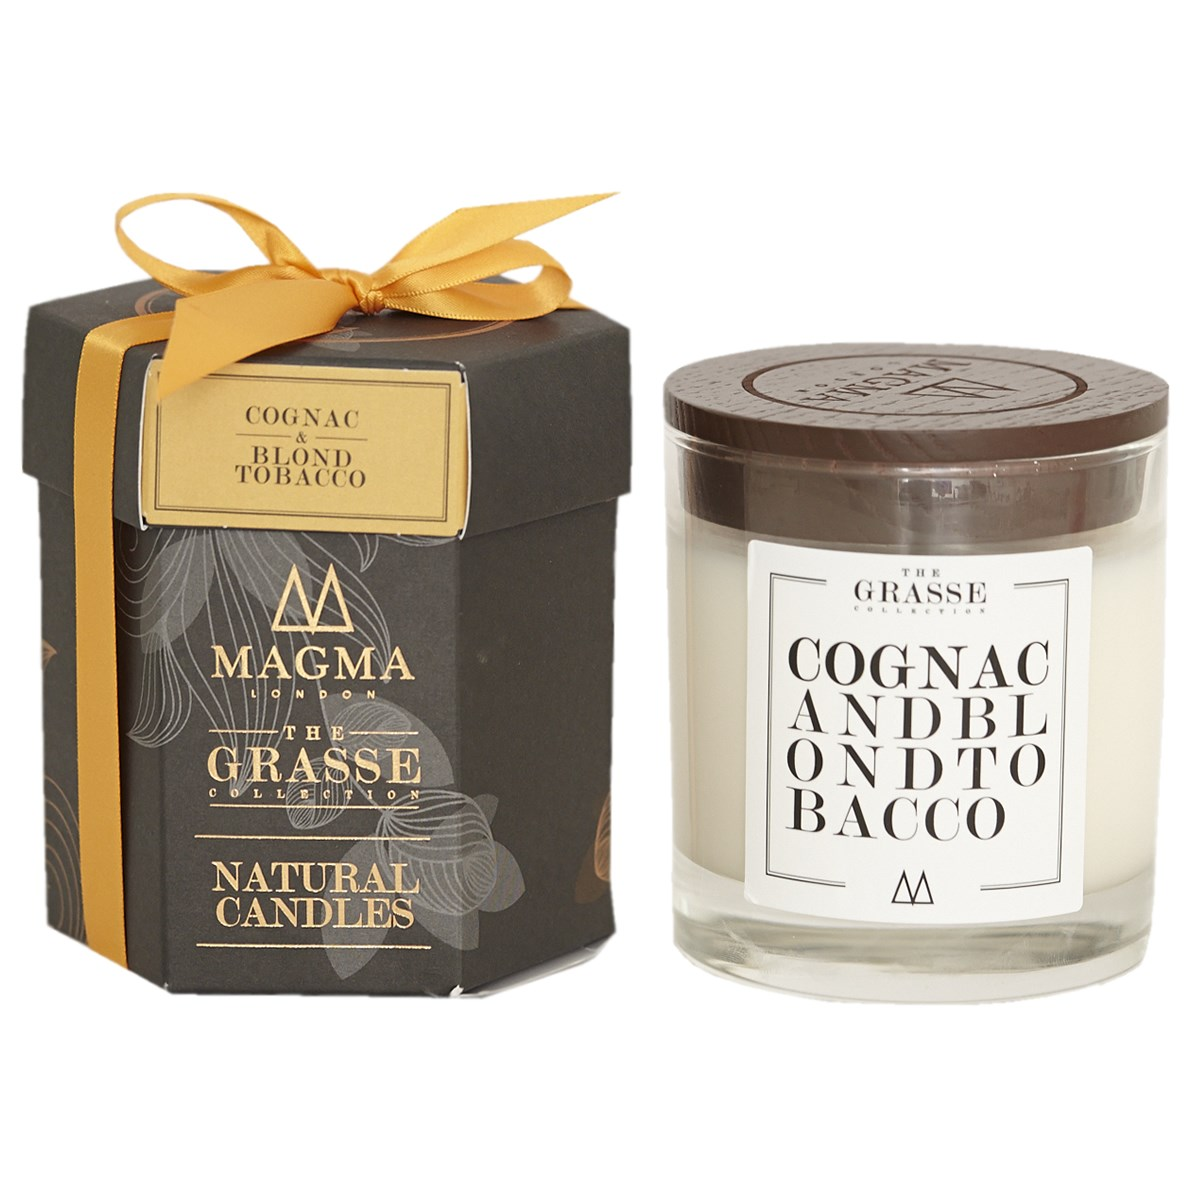 Magma London The Grasse Collection Natural Candle - Cognac & Blond Tobacco